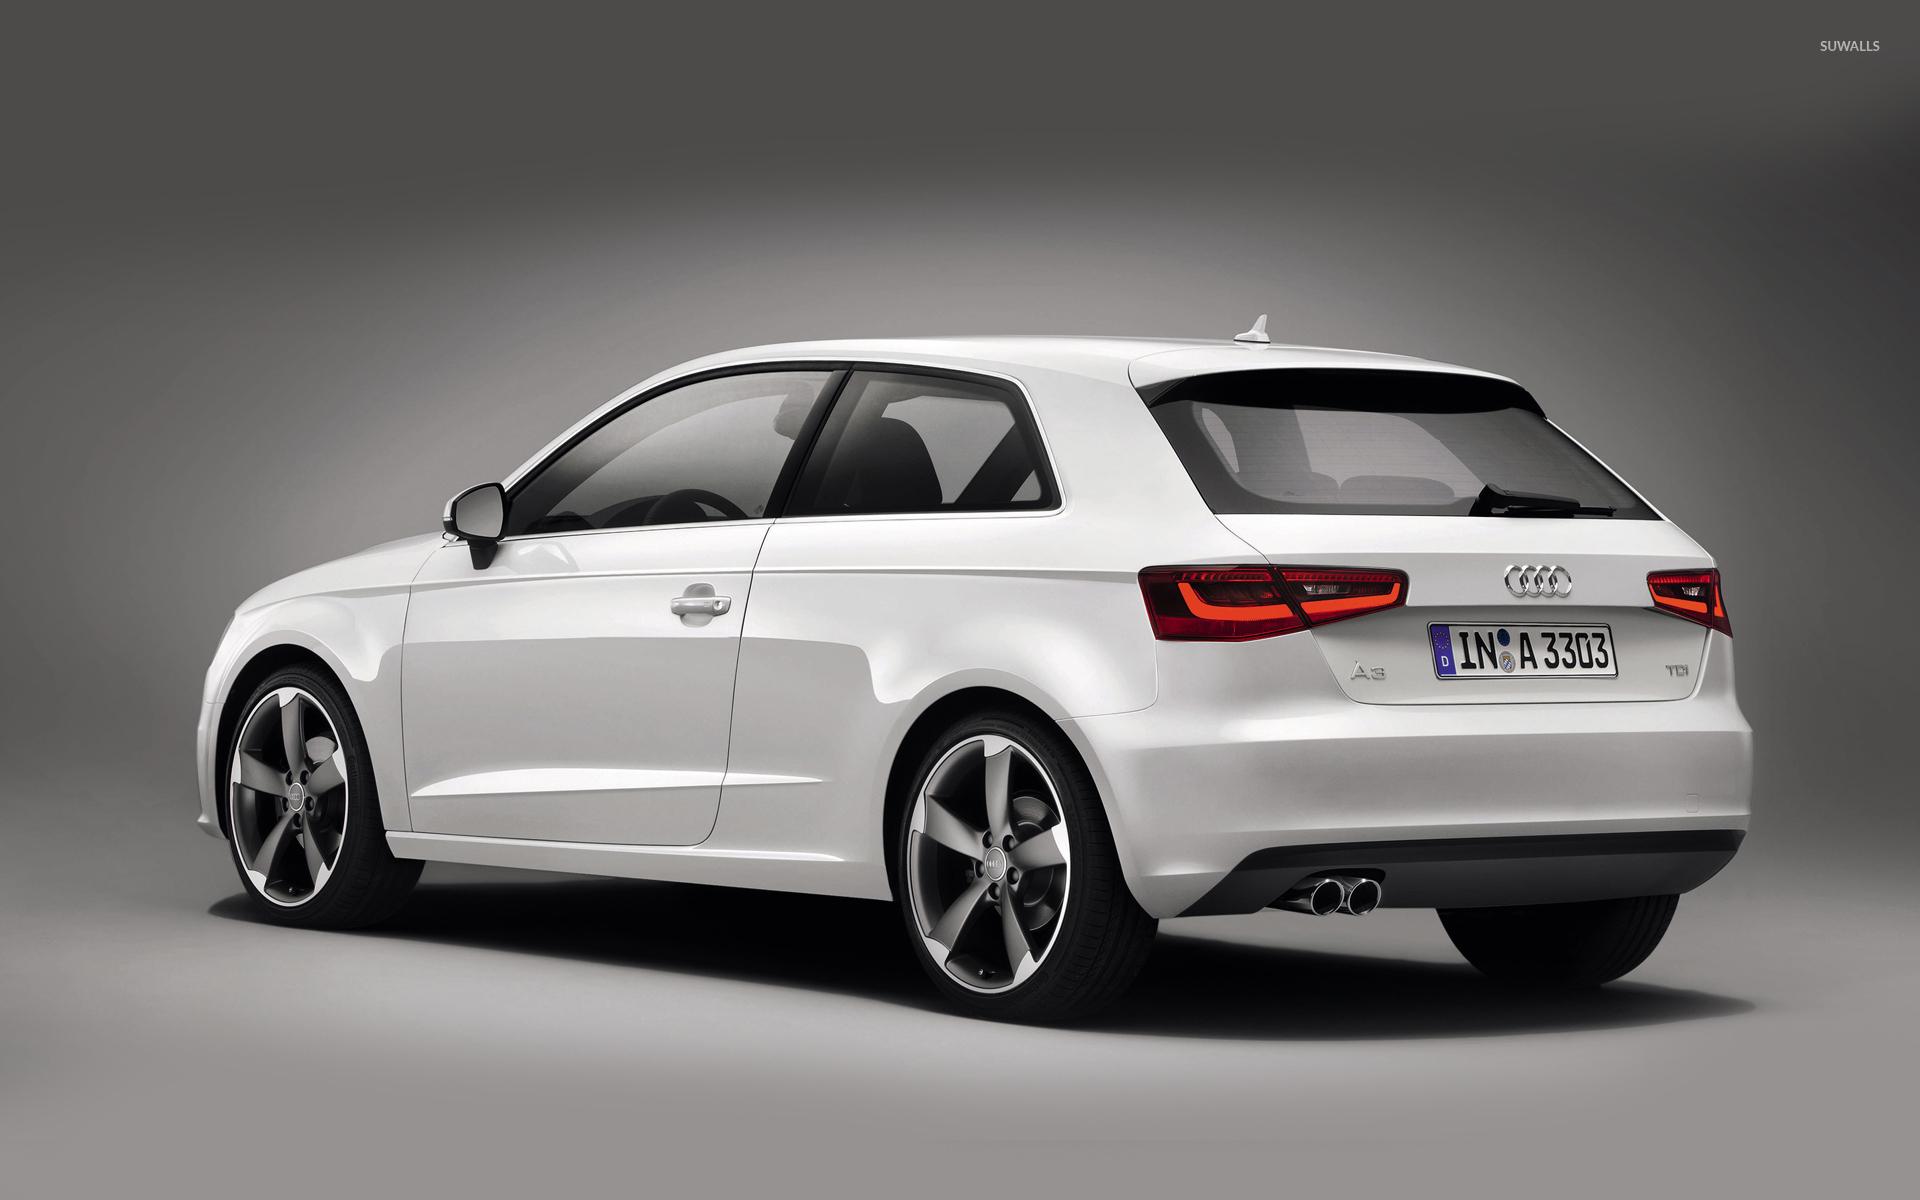 2013 White Audi A3 Hatchback Back Side View Wallpaper Car Wallpapers 52570